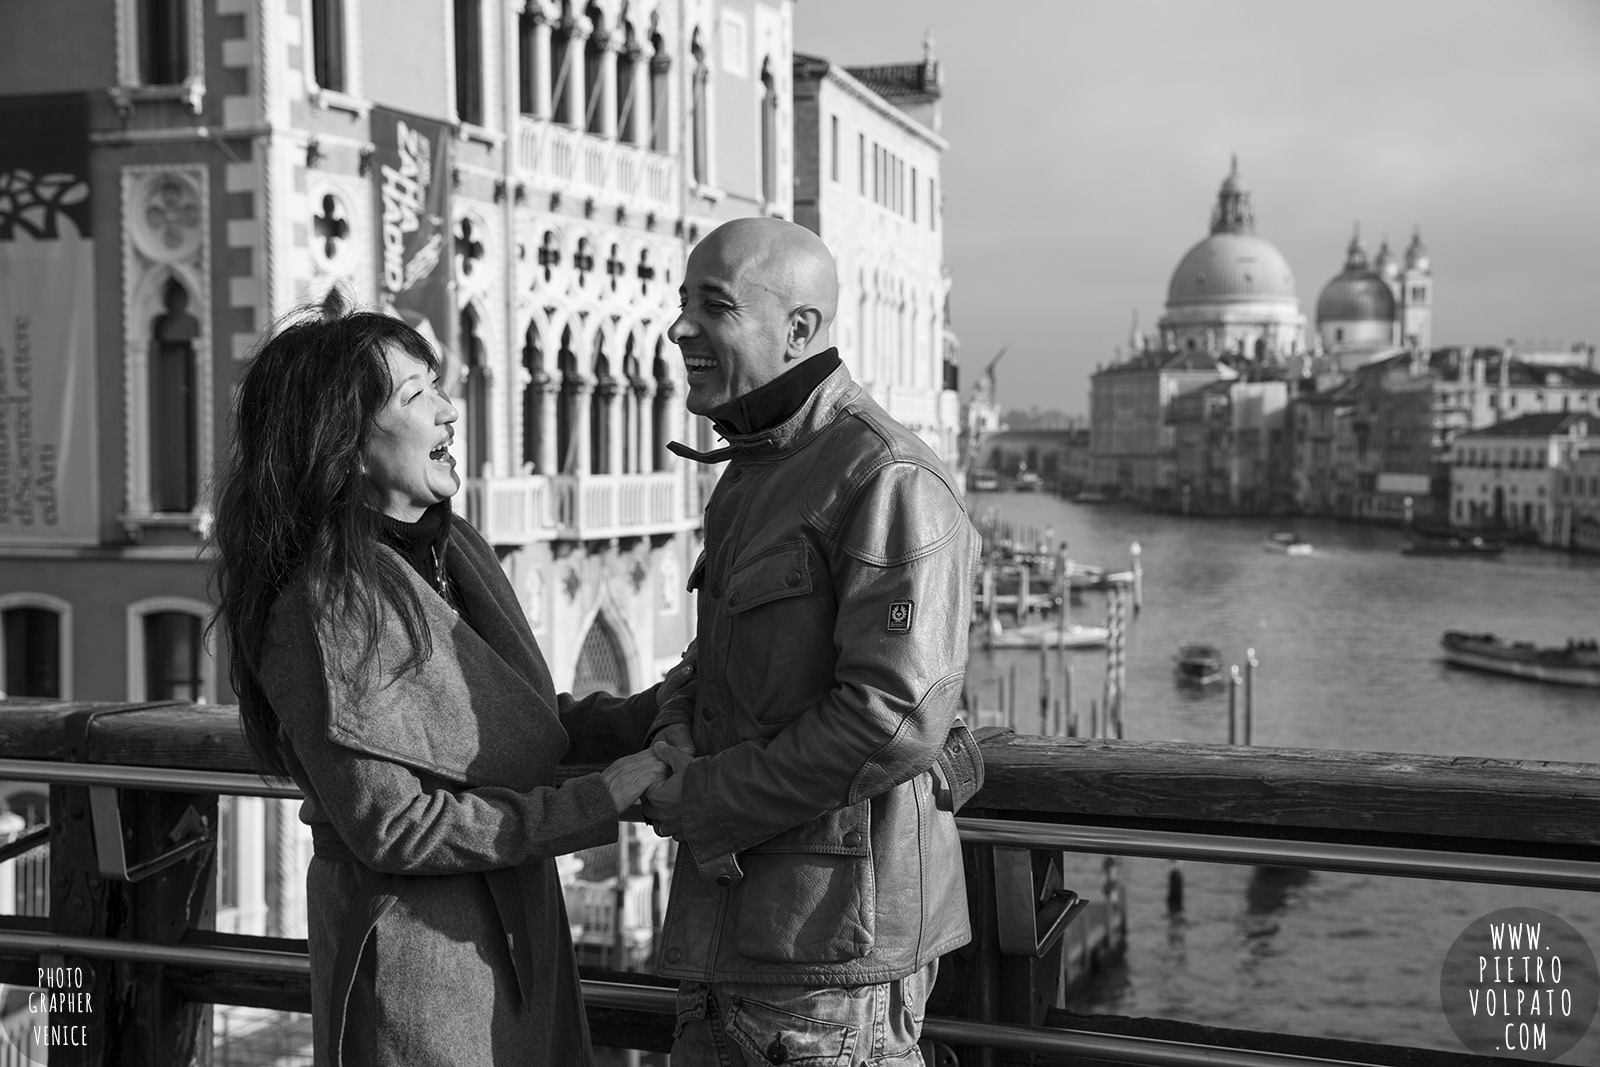 photographer in venice for photoshoot of couple wedding anniversary pictures